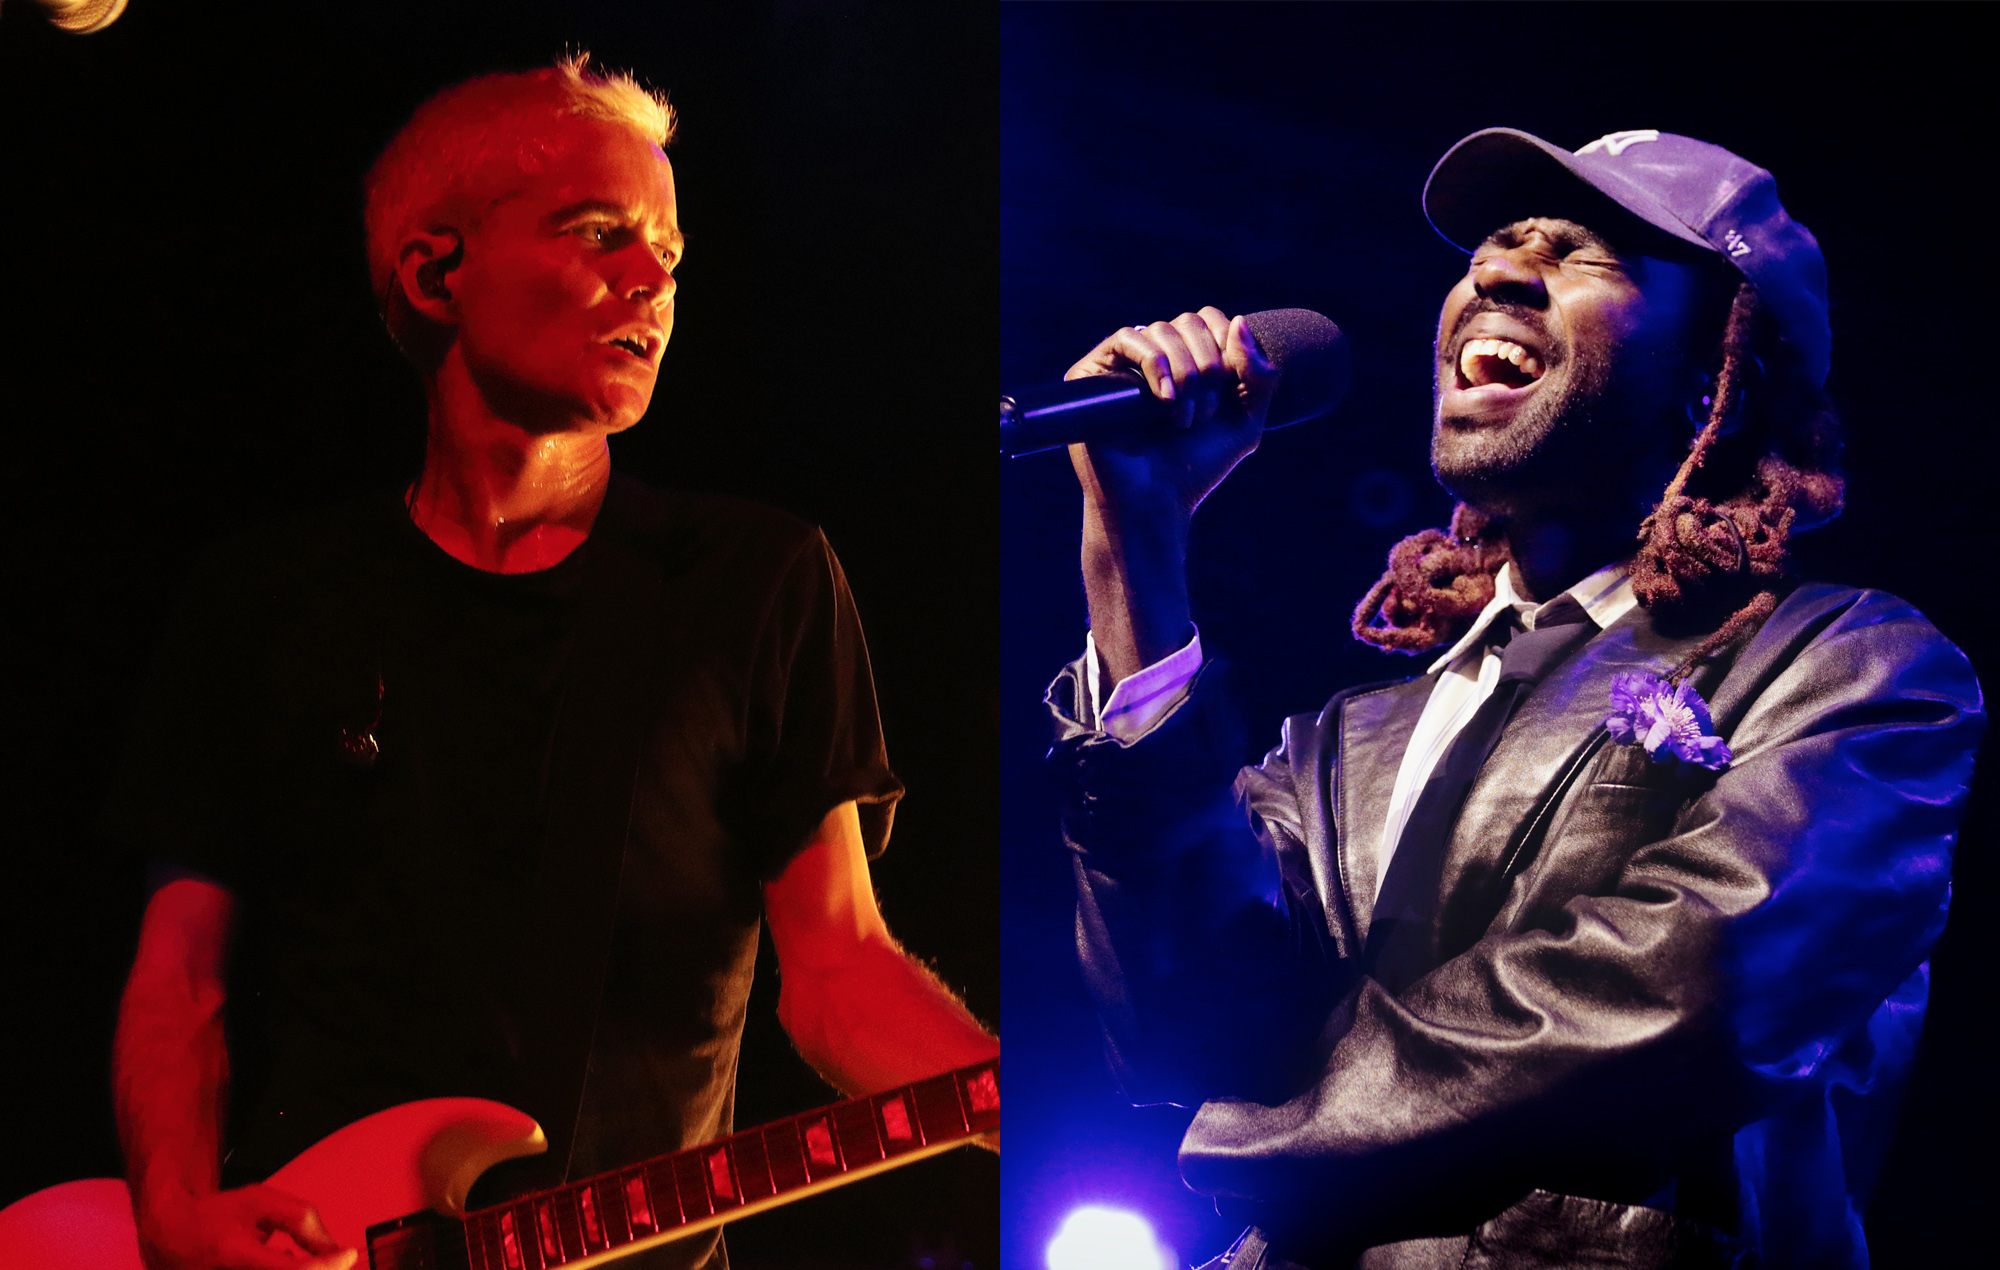 Avalanches tease Blood Orange collaboration new song